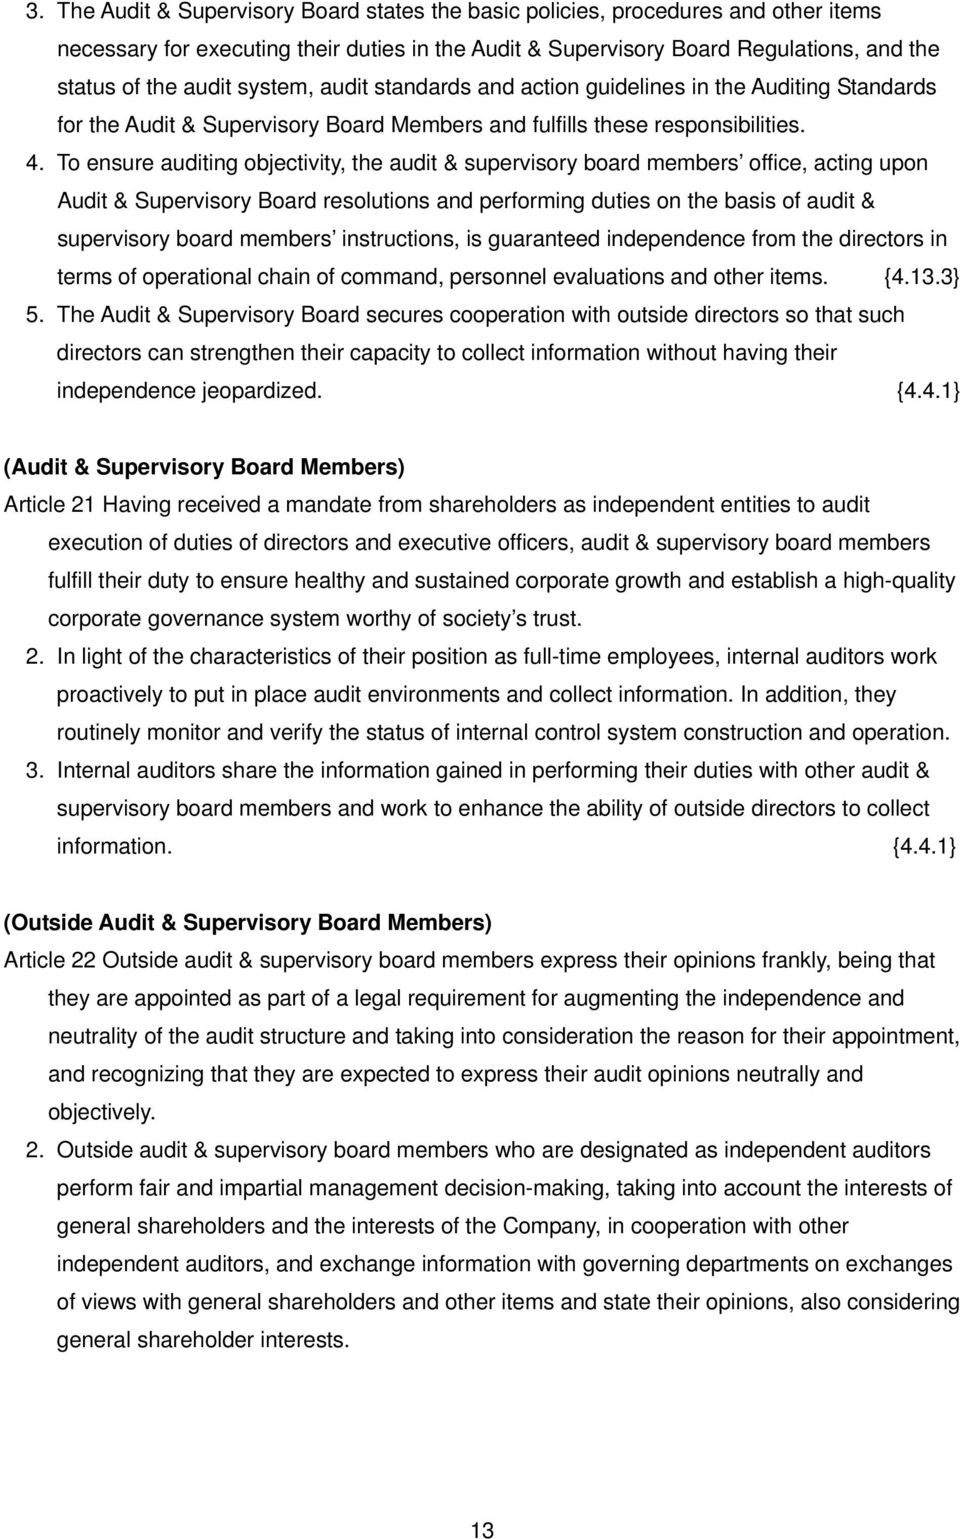 To ensure auditing objectivity, the audit & supervisory board members office, acting upon Audit & Supervisory Board resolutions and performing duties on the basis of audit & supervisory board members